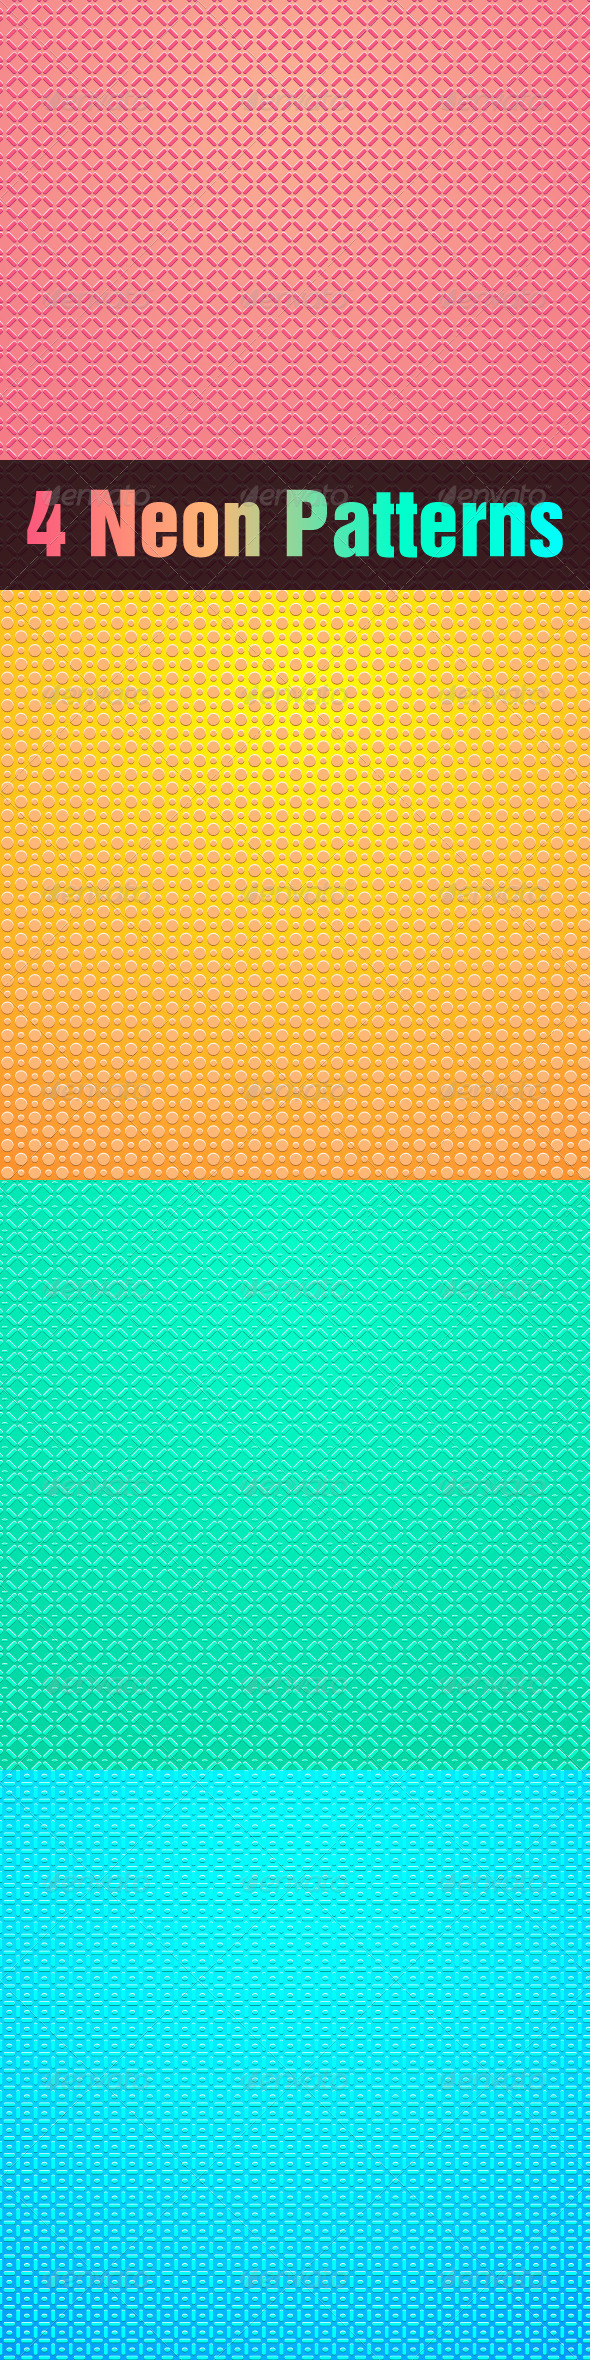 Set of Seamless Neon Abstract Vector Patterns